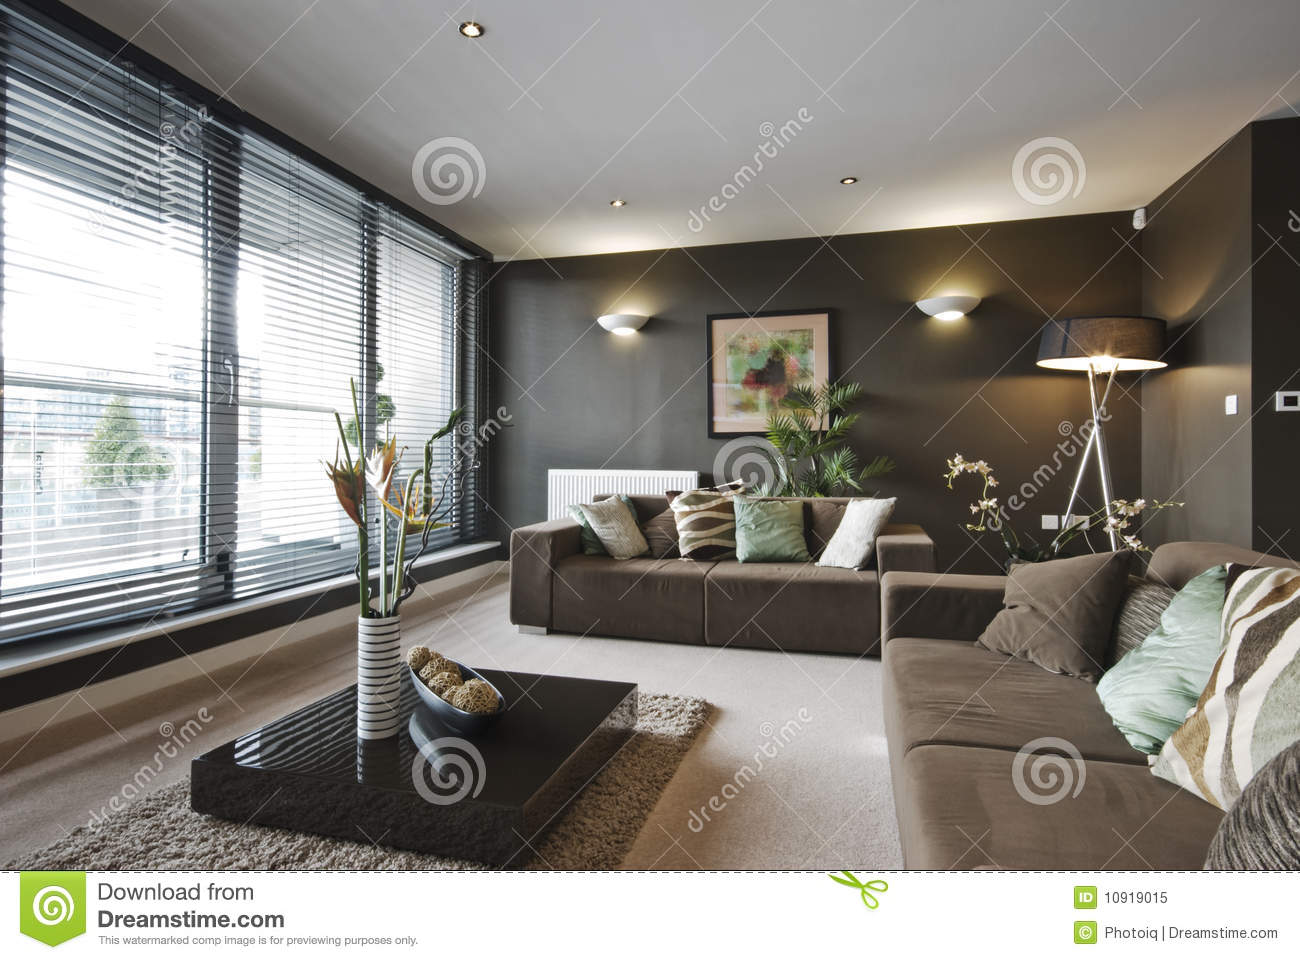 salle de s jour de luxe contemporaine image stock image du luxe centrale 10919015. Black Bedroom Furniture Sets. Home Design Ideas